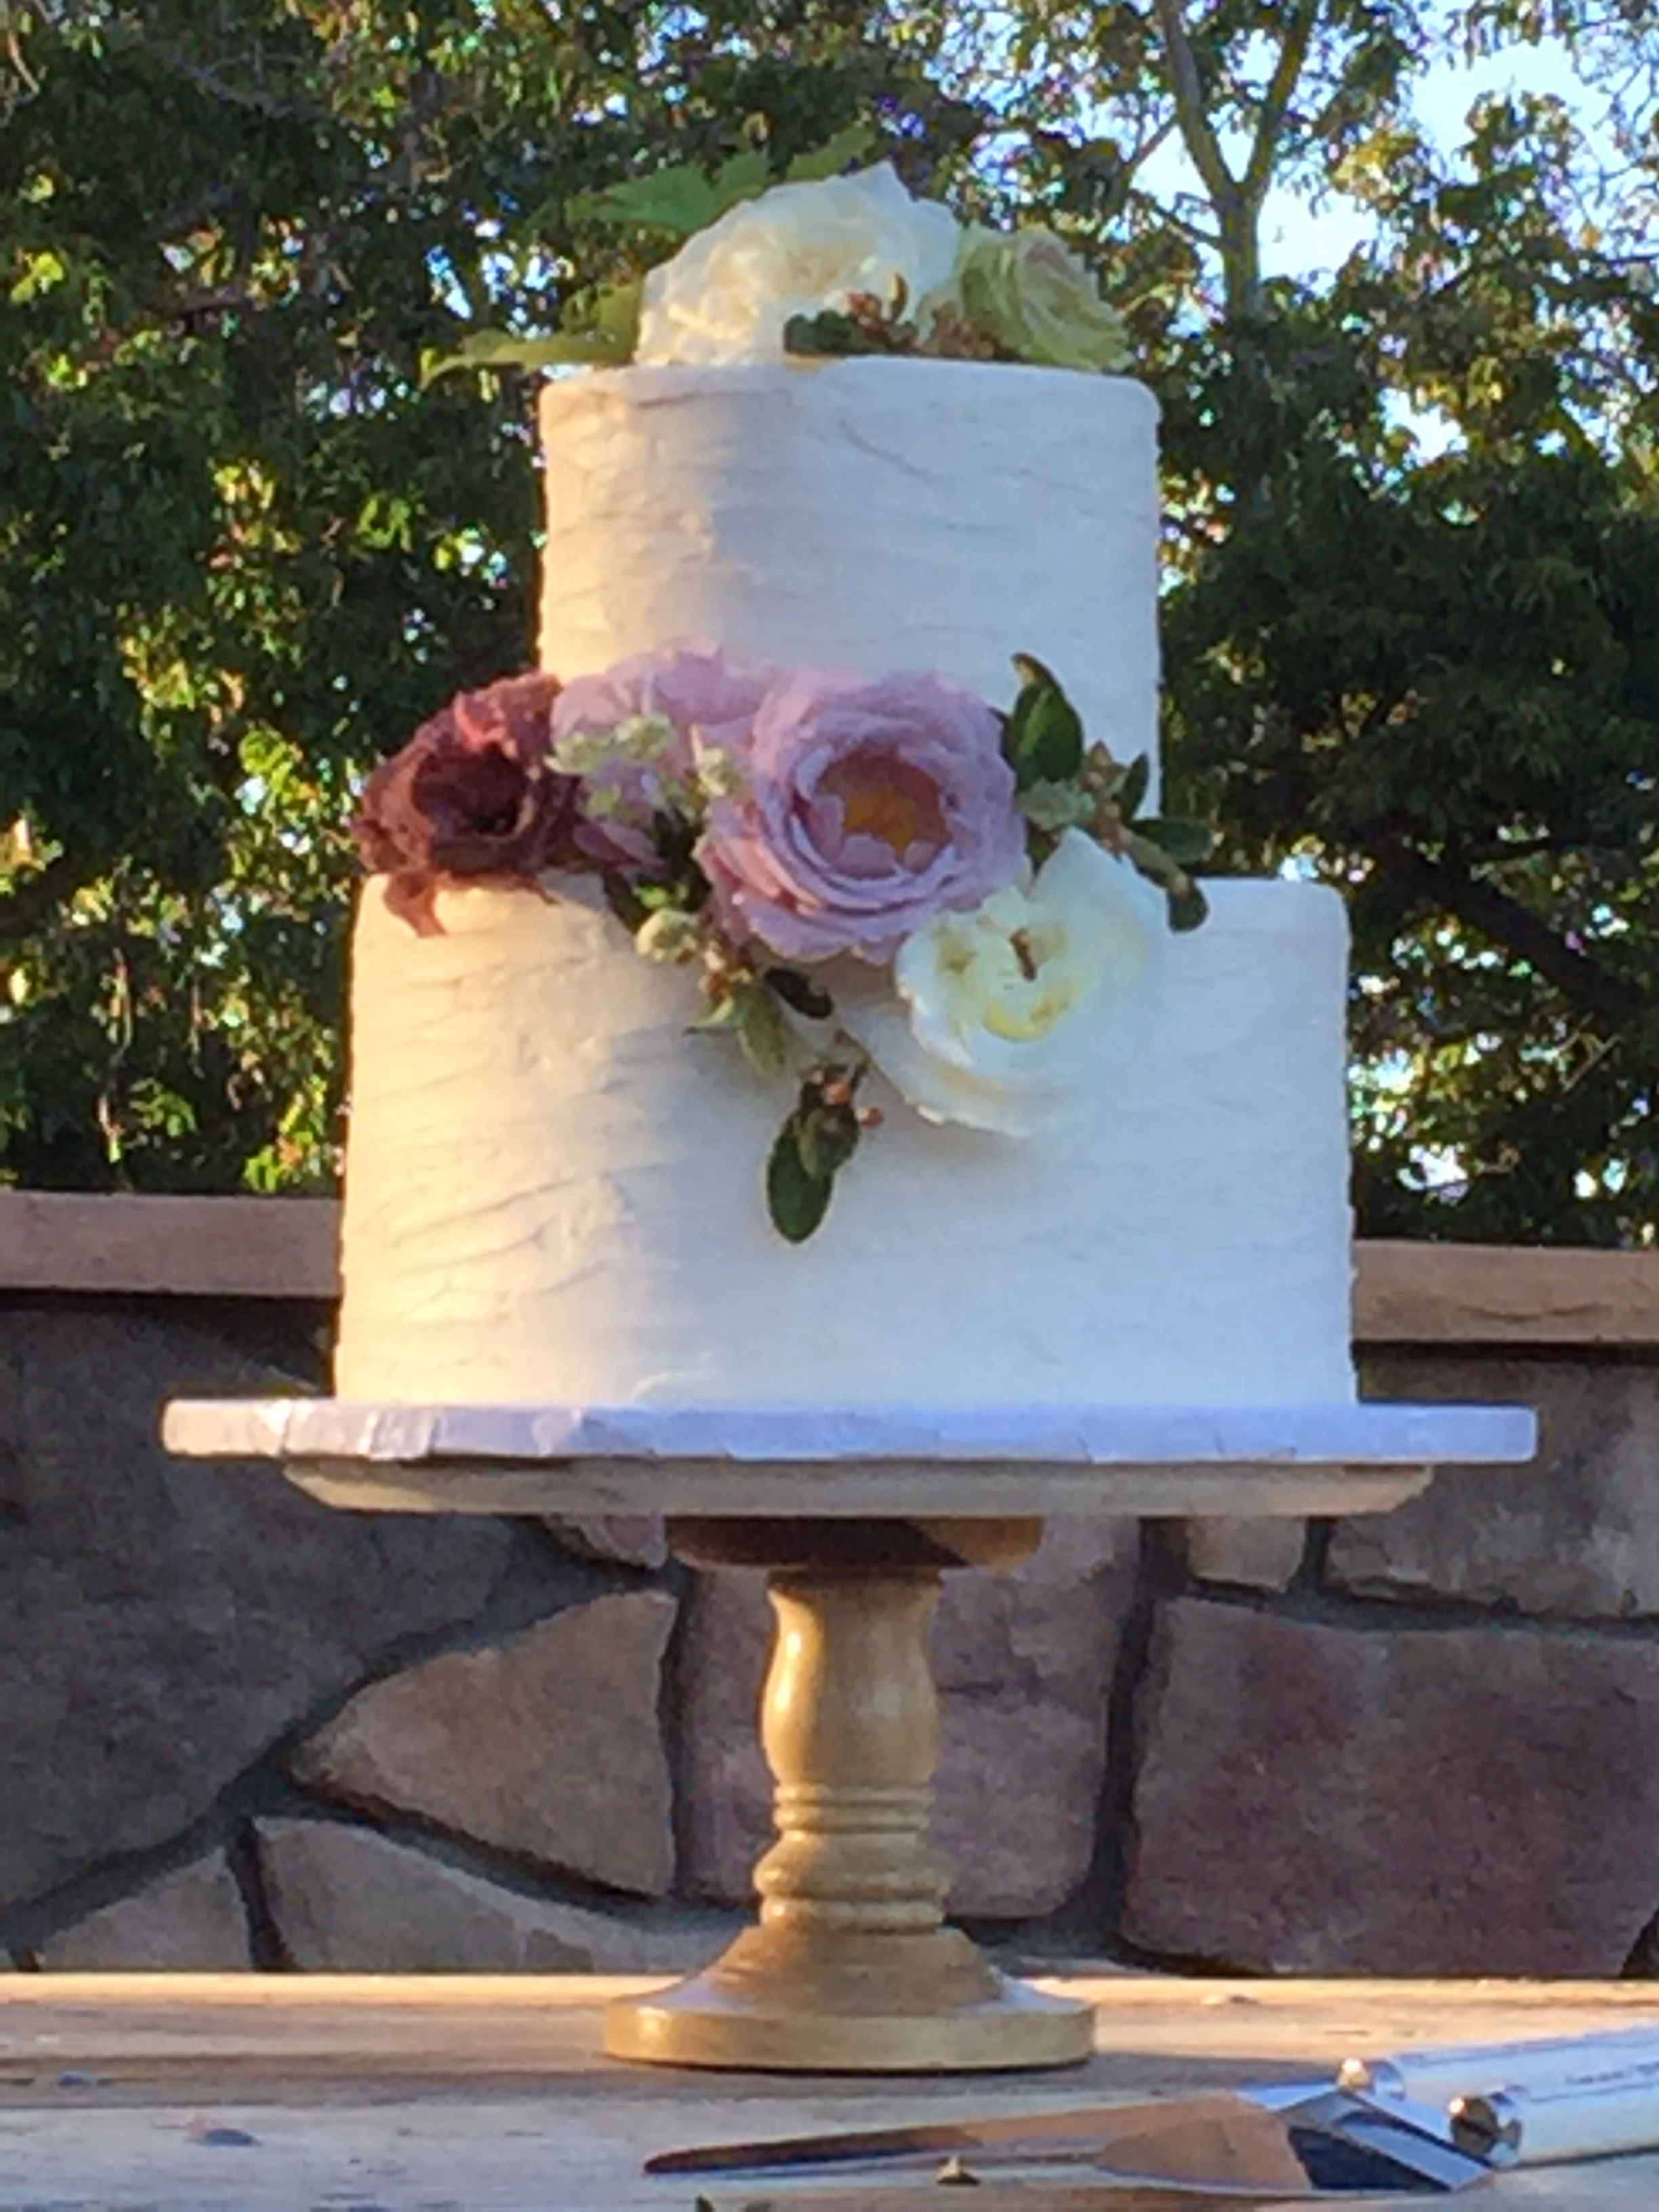 17.10.22 - Bittner Kunstt Wedding - Cake Close-up